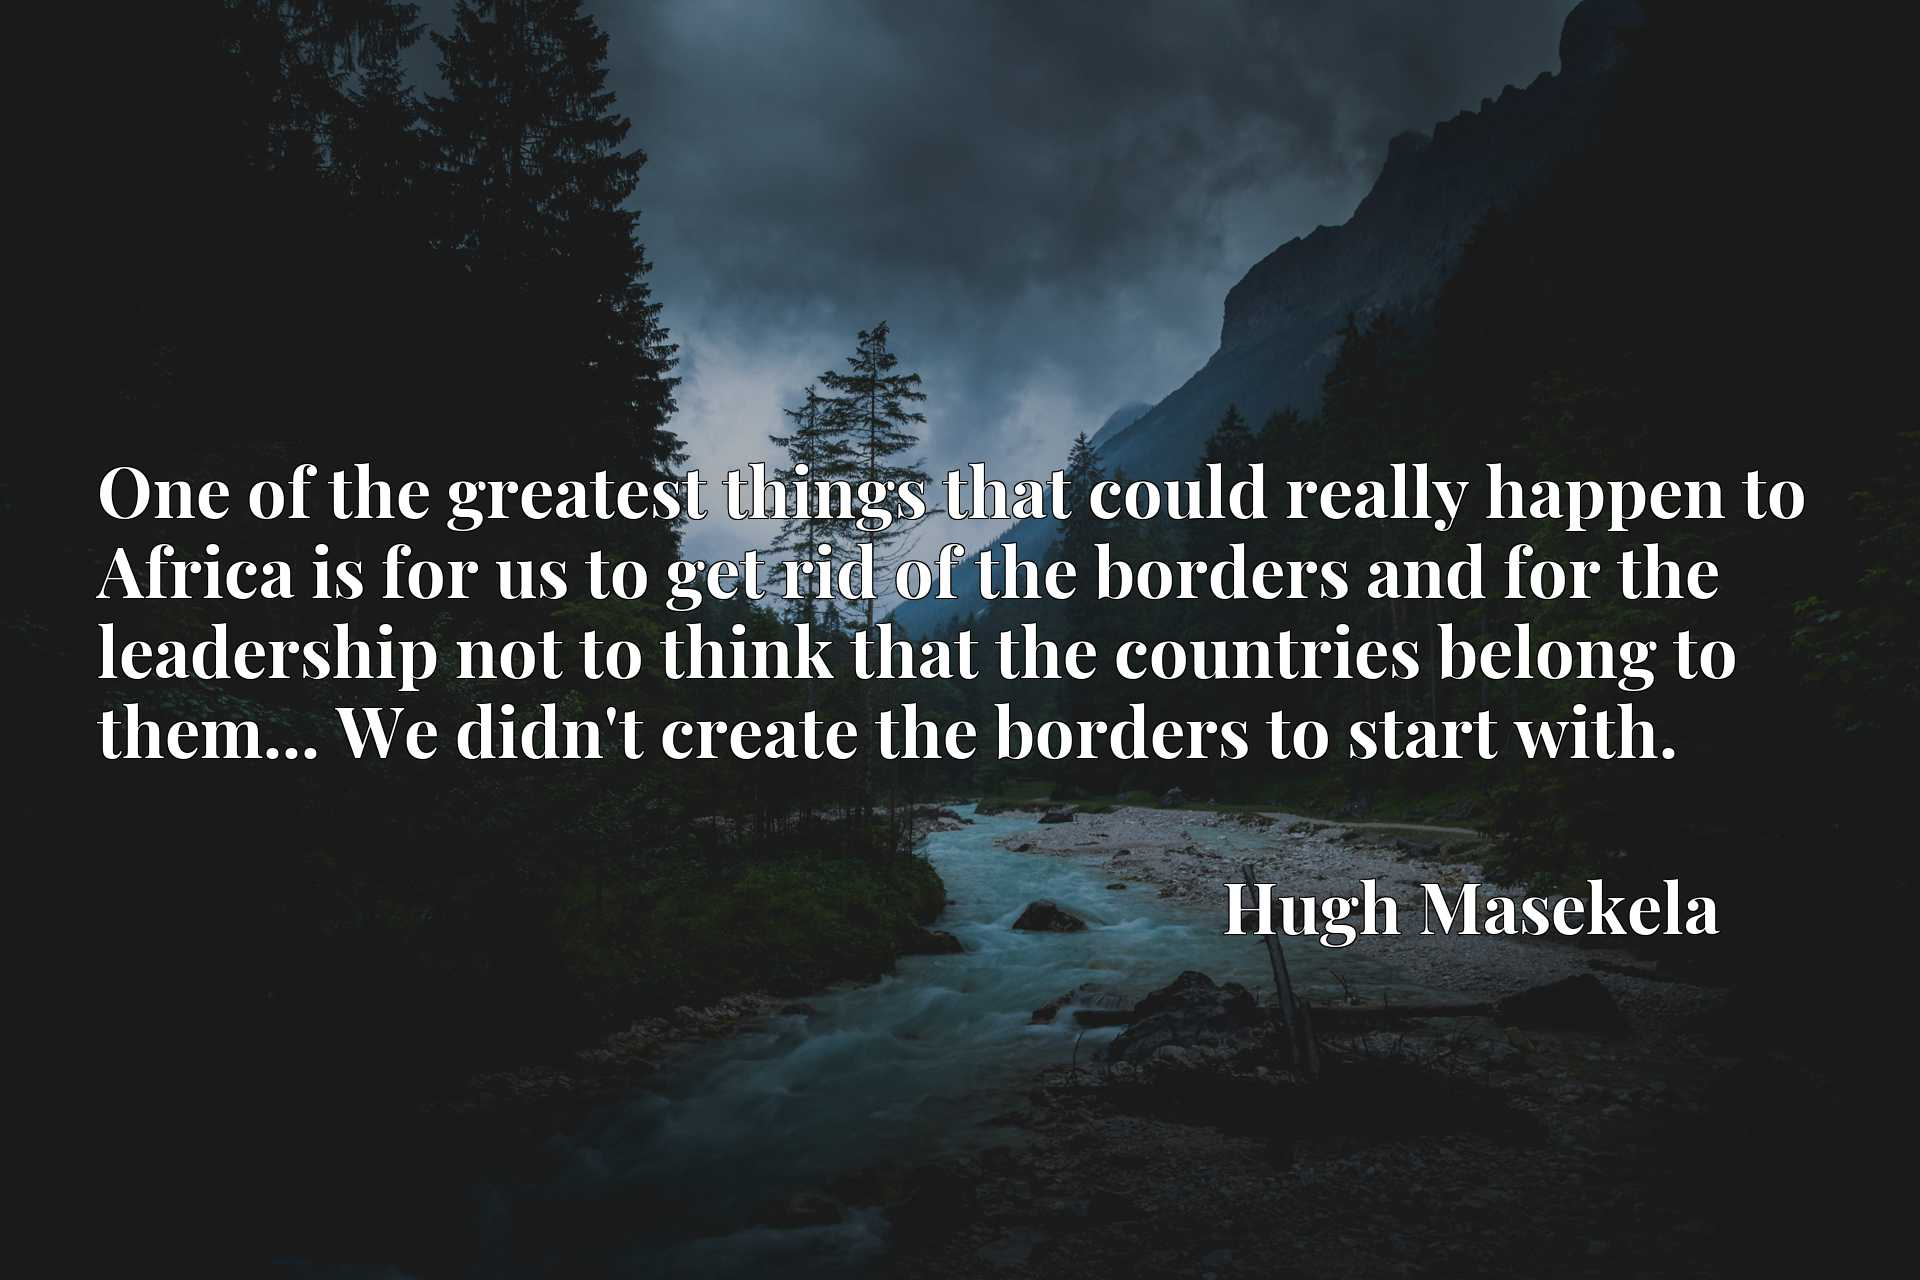 One of the greatest things that could really happen to Africa is for us to get rid of the borders and for the leadership not to think that the countries belong to them... We didn't create the borders to start with.